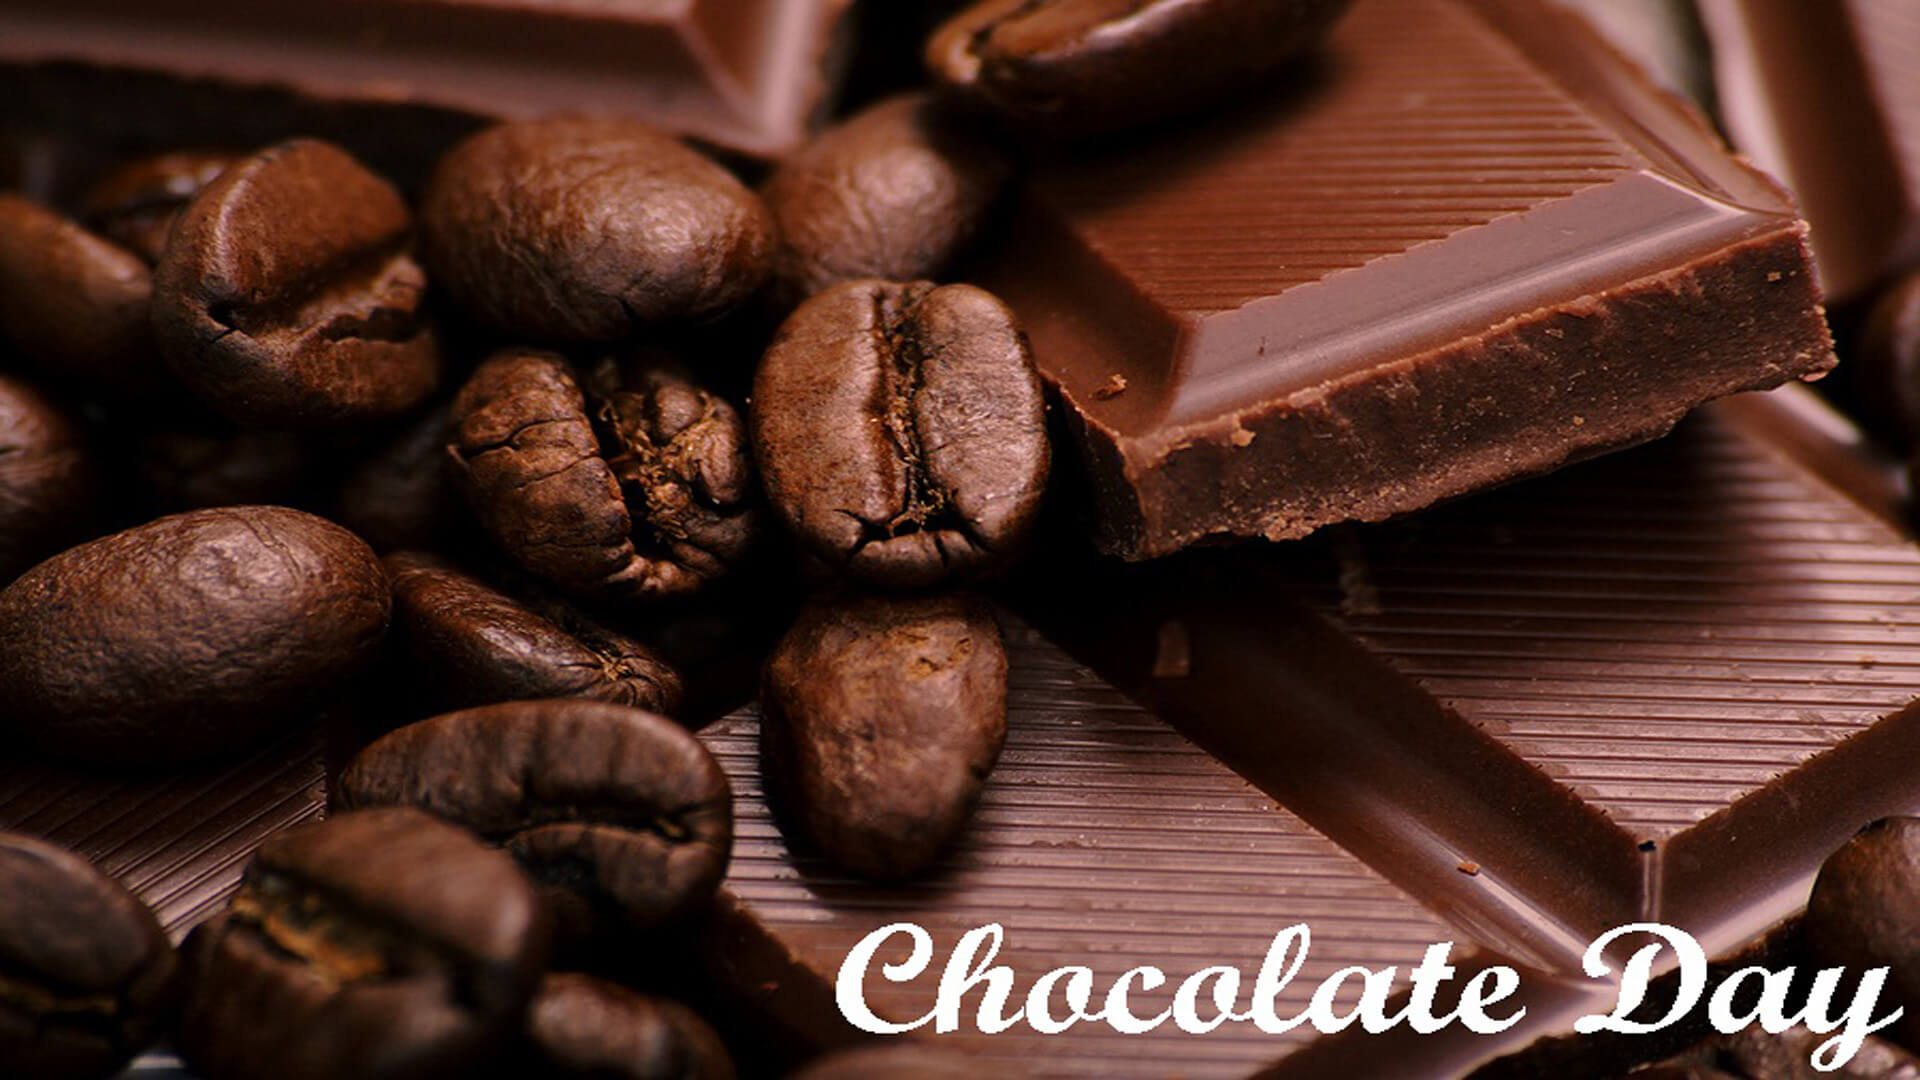 happy chocolate day nuts graphic image love facebook whatsapp hd wallpaper